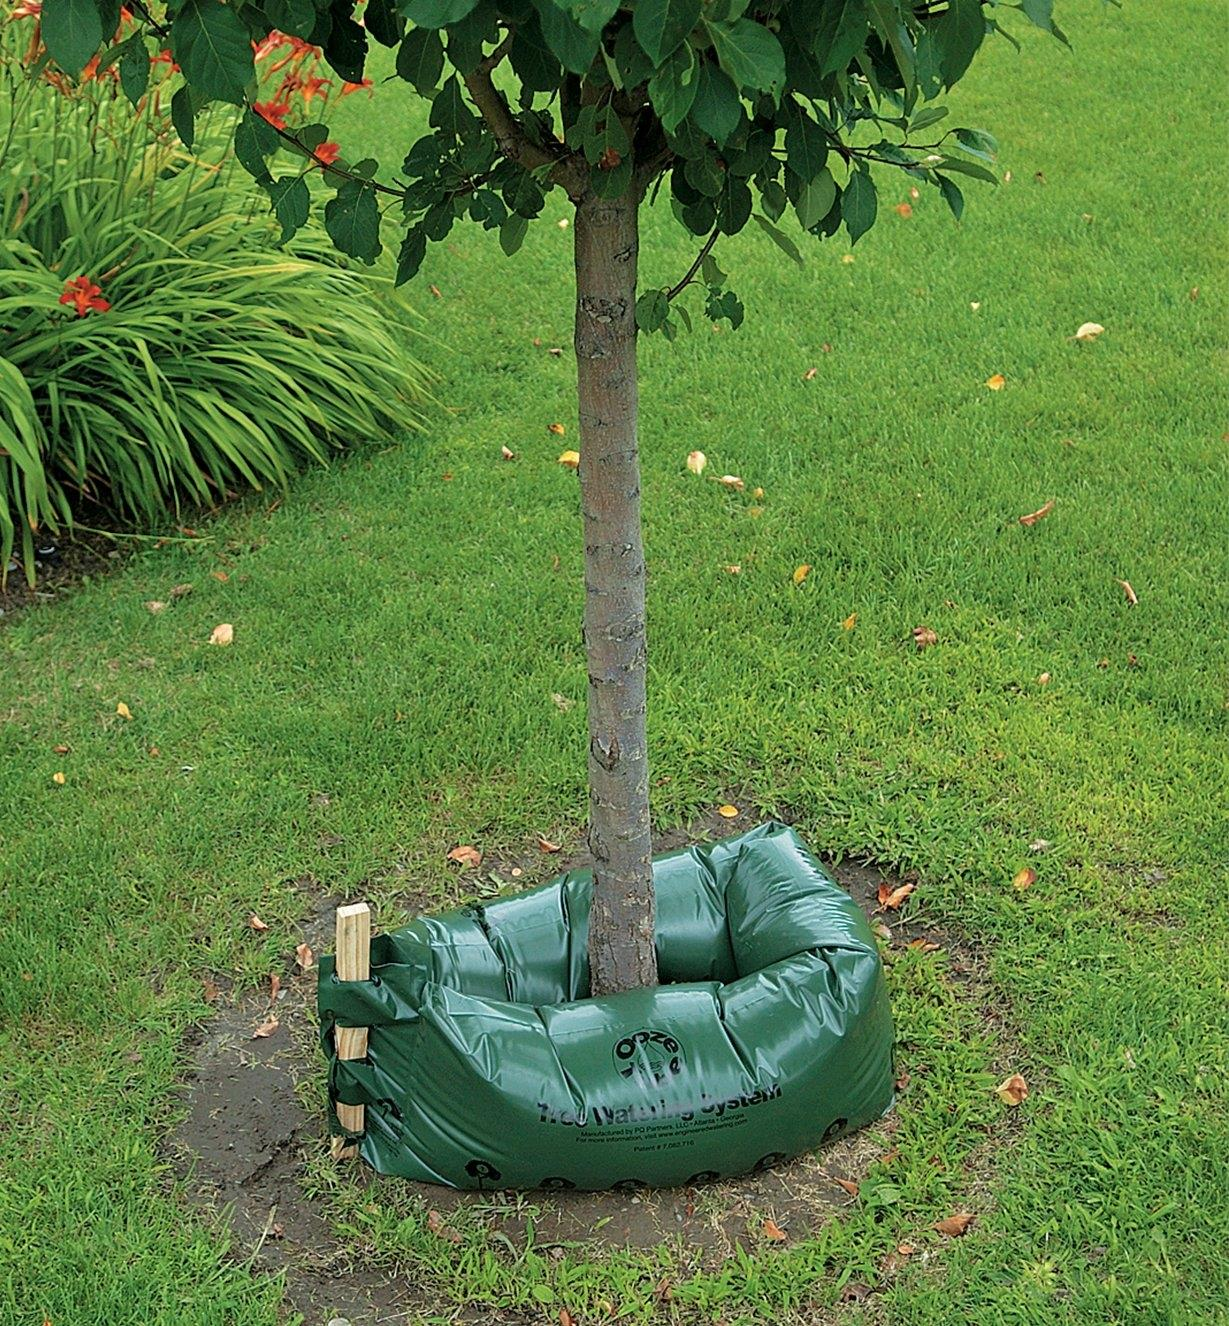 Tree Drip Irrigation System positioned around a young tree and filled with water